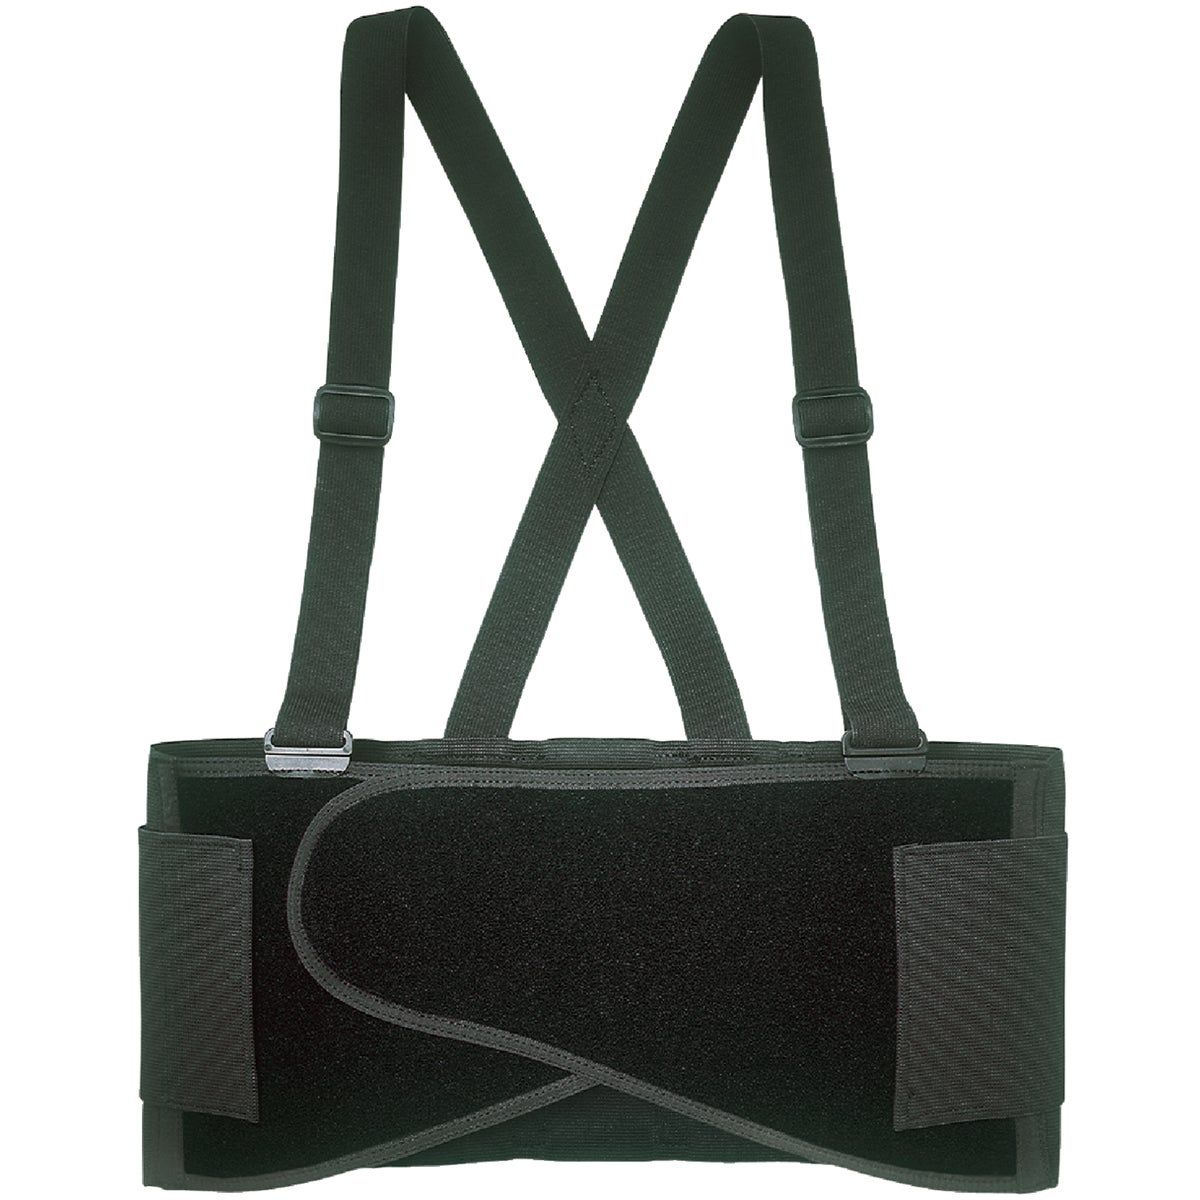 MEDIUM BACK SUPPORT BELT - 5000M by Custom Leathercraft